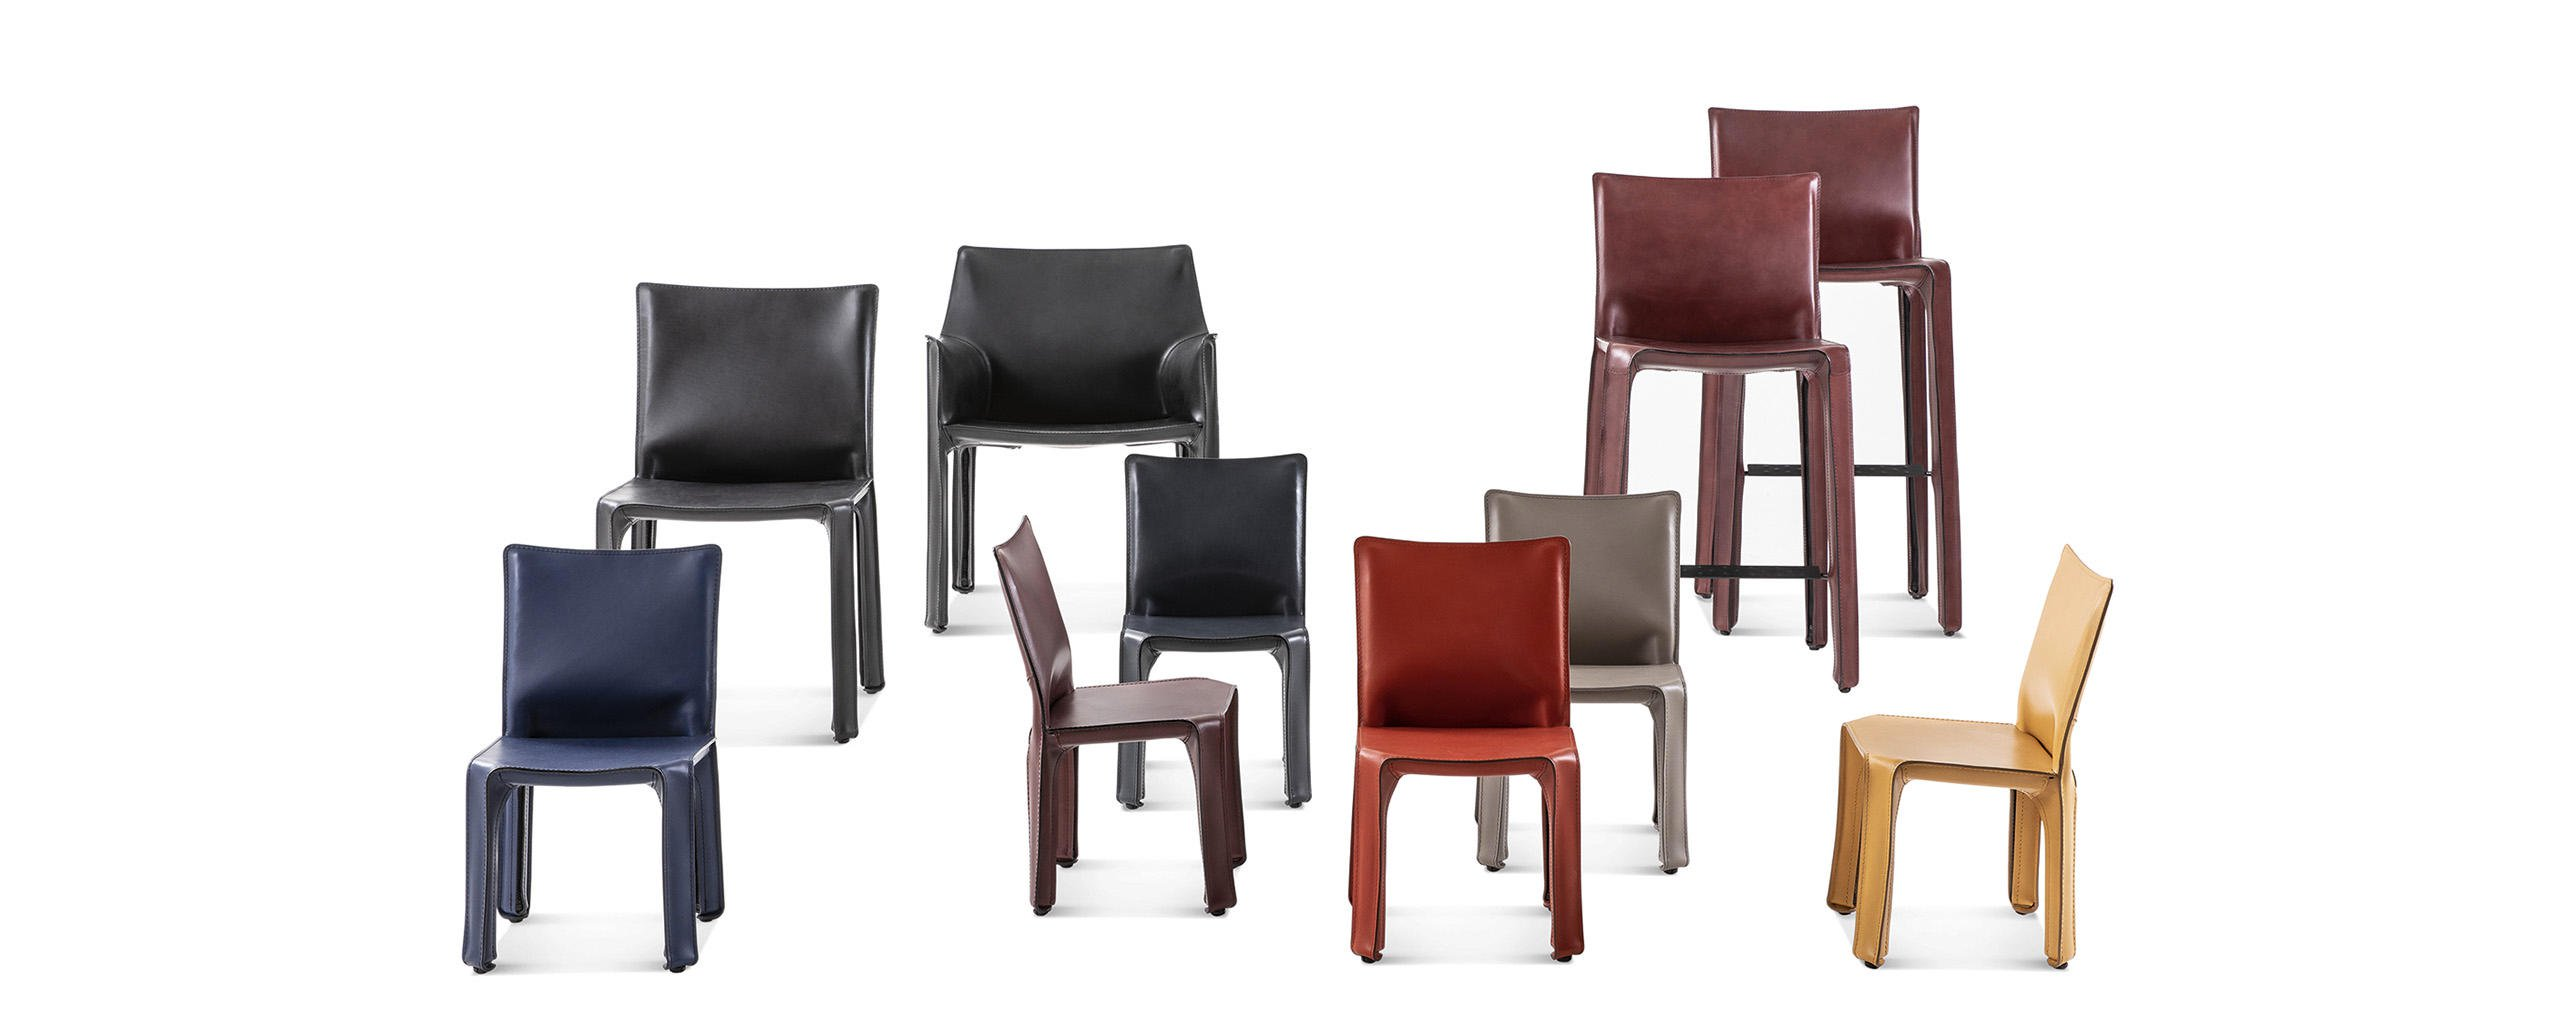 1_cassina_cab_family_mario_bellini